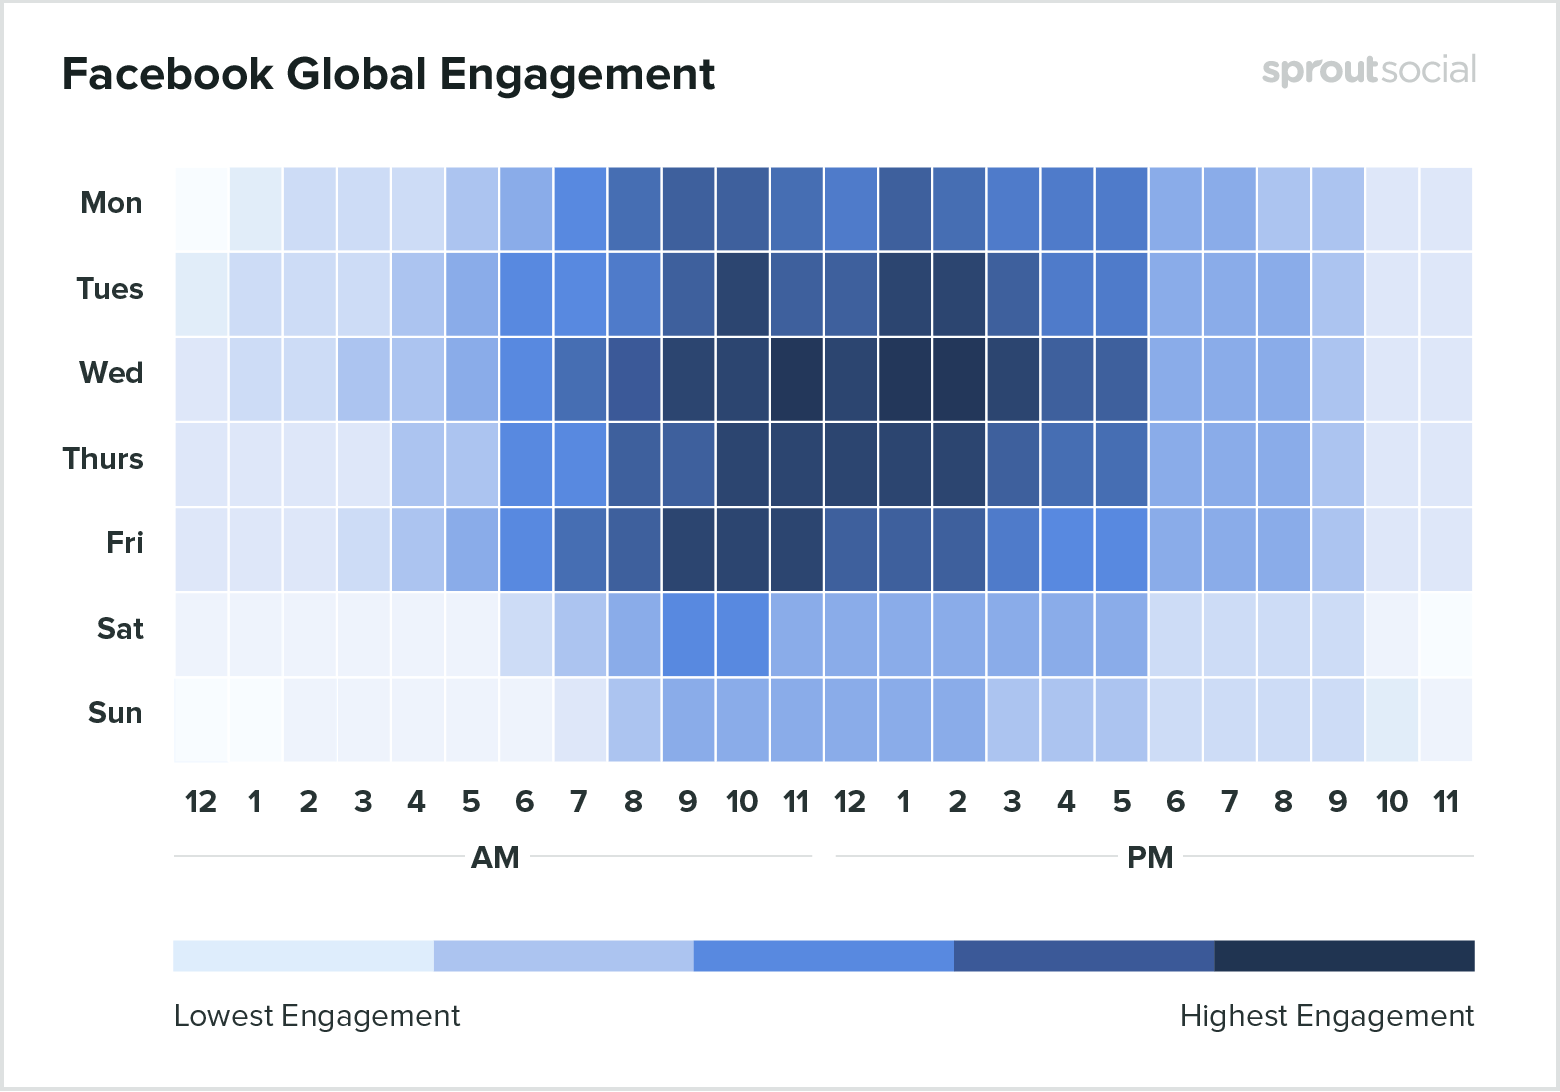 Best time to post on Facebook in 2020 - chart